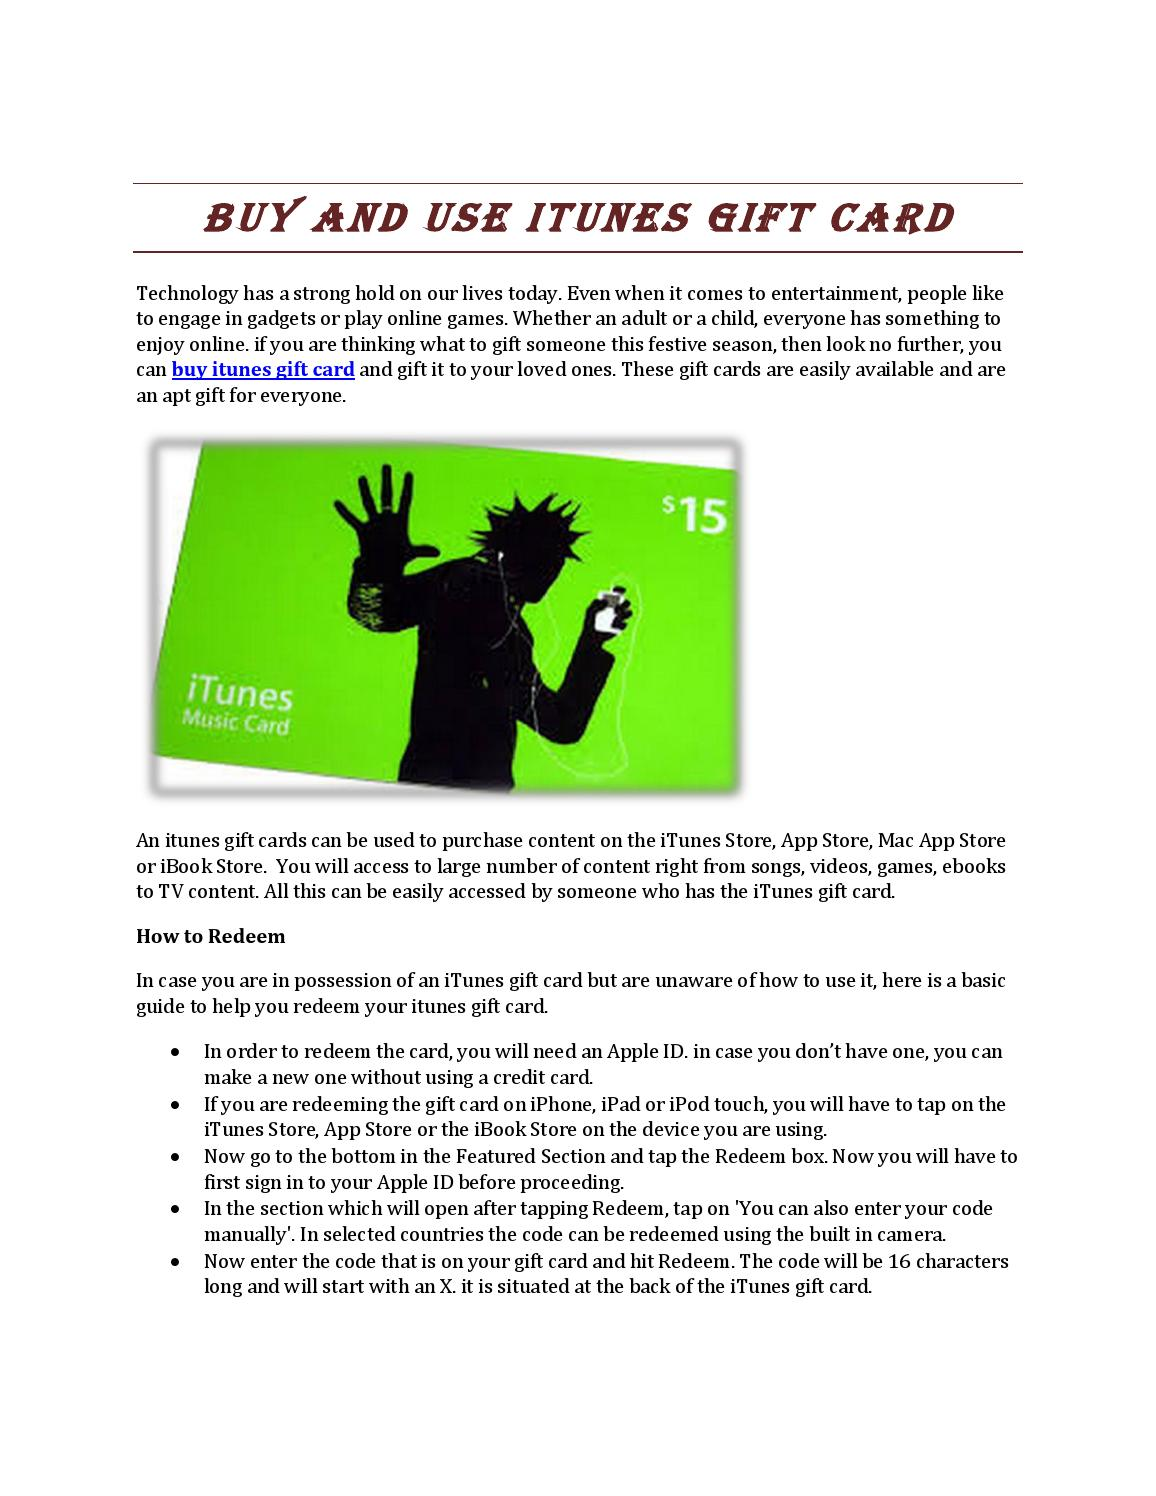 Buy and use itunes gift card by Alexander Queen - issuu